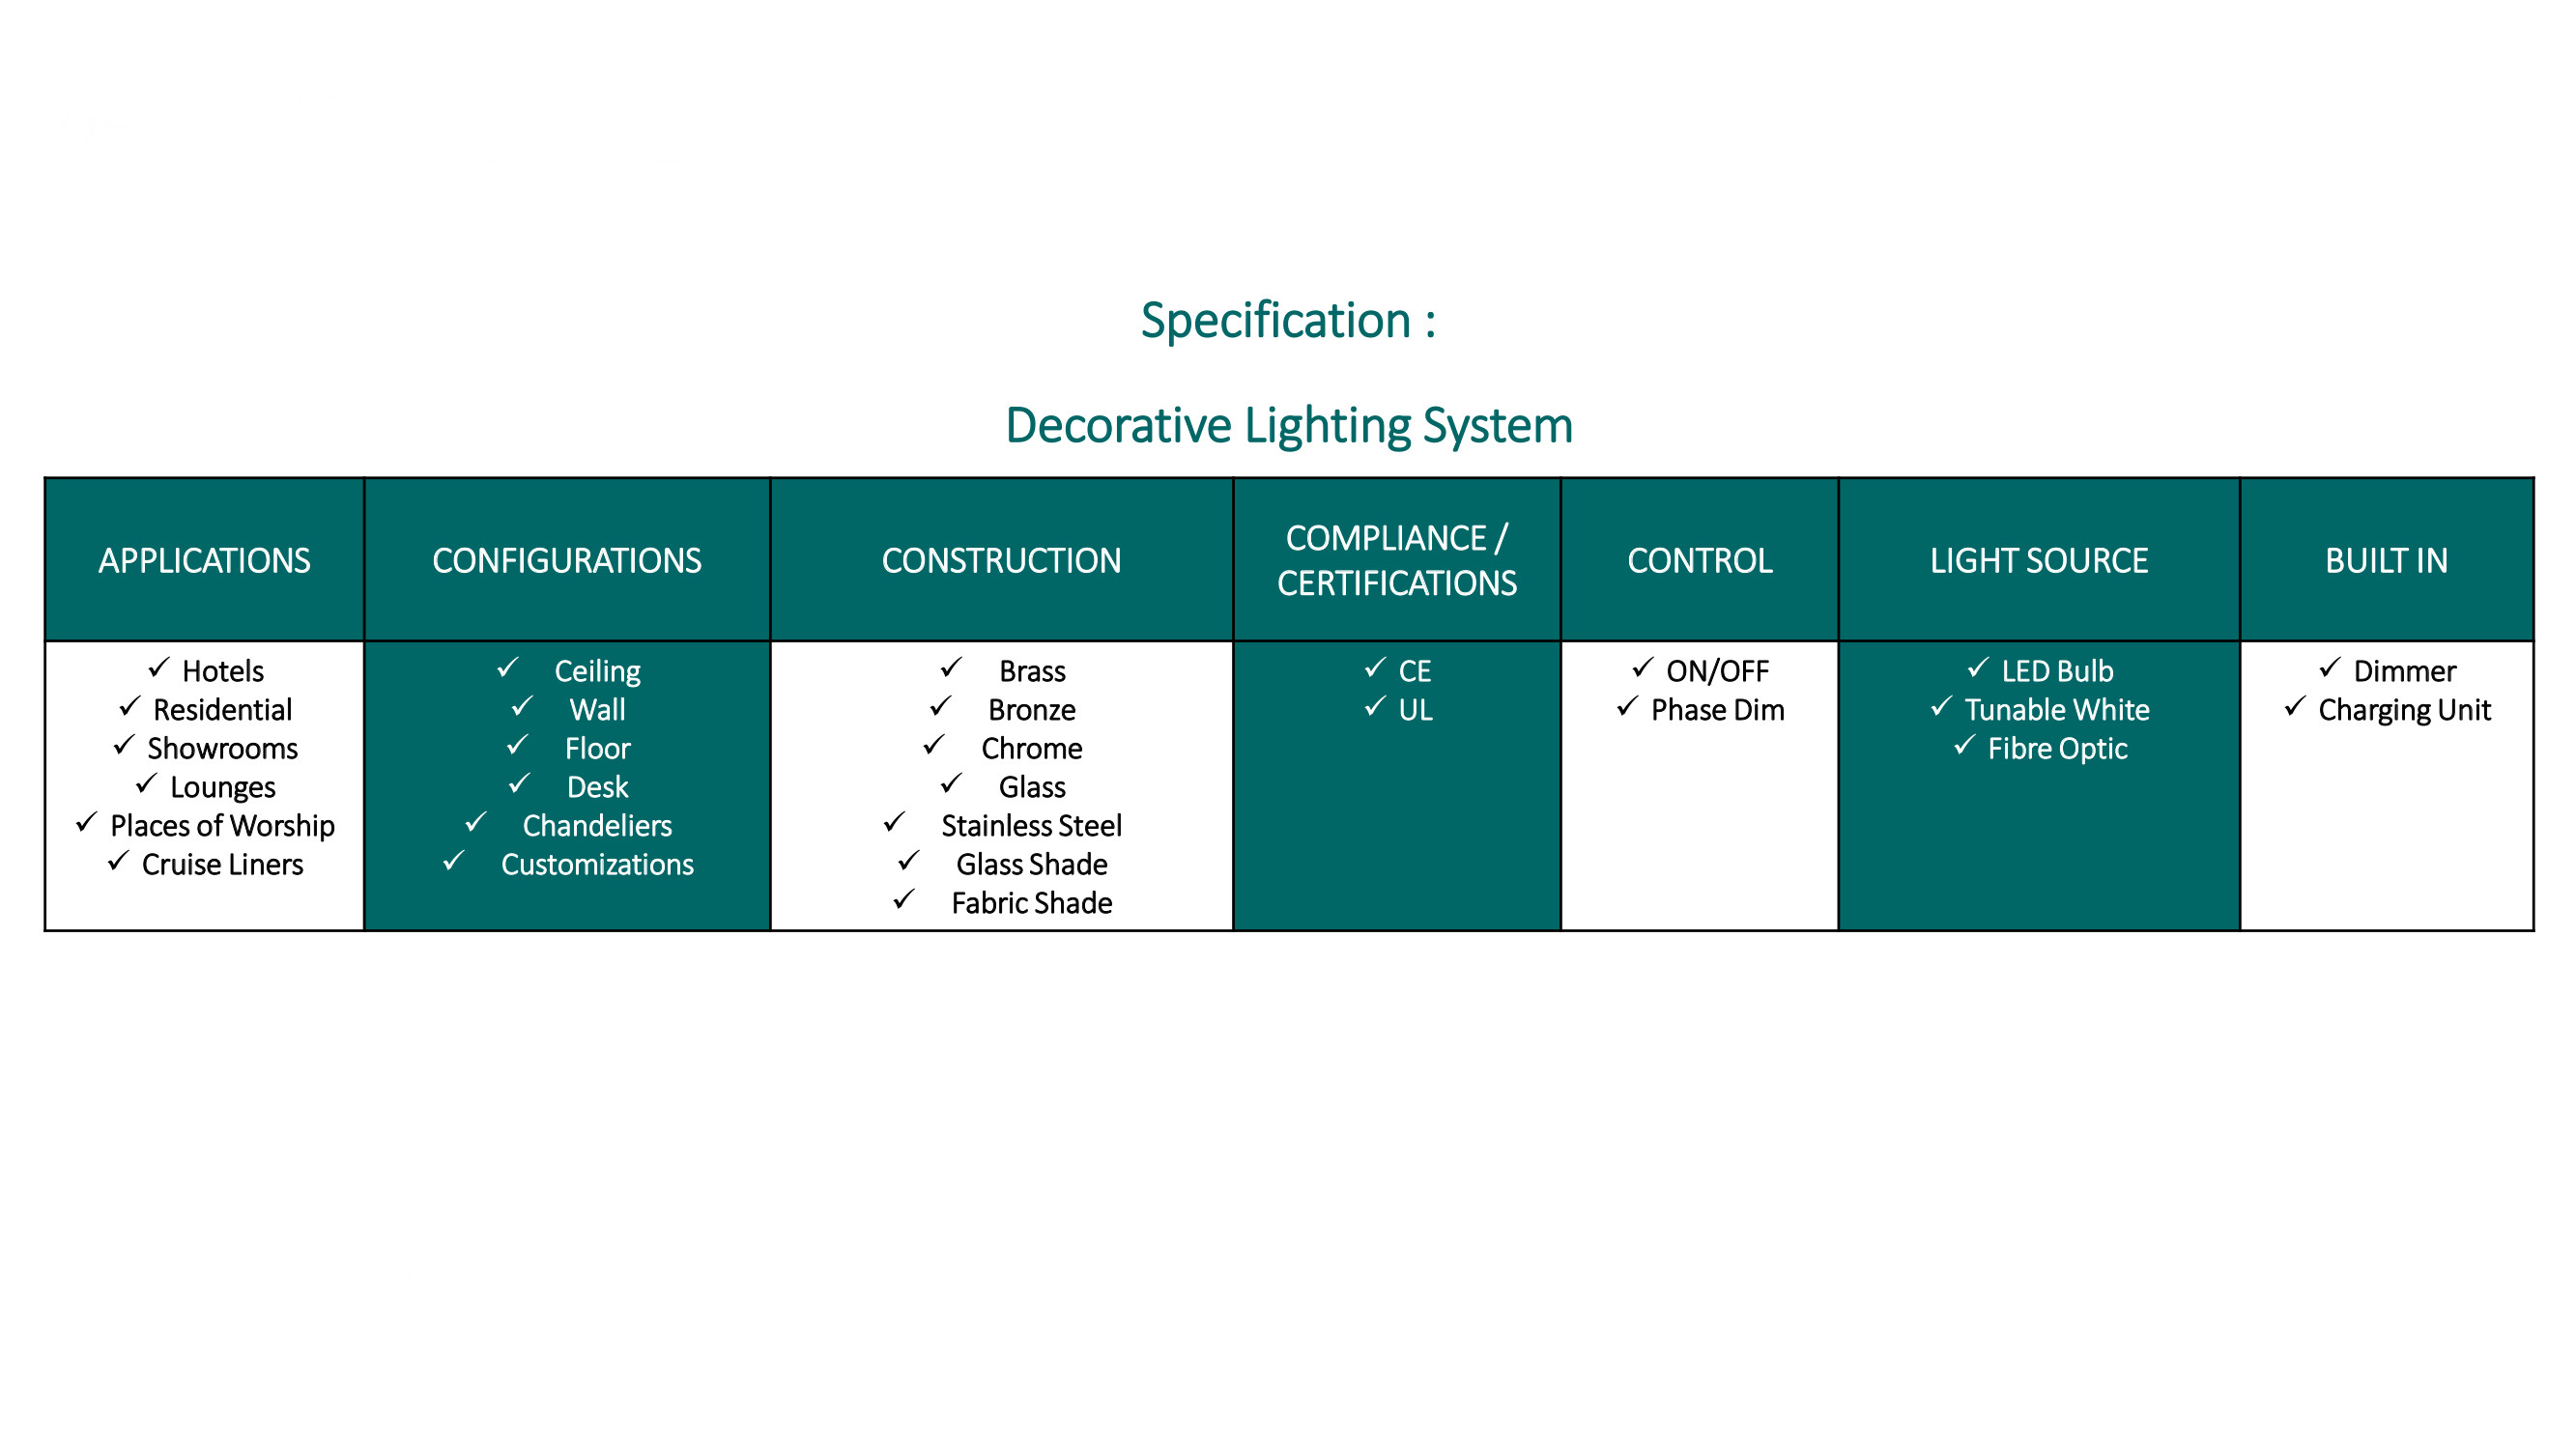 Decorative Lighting System Specification Table Devar